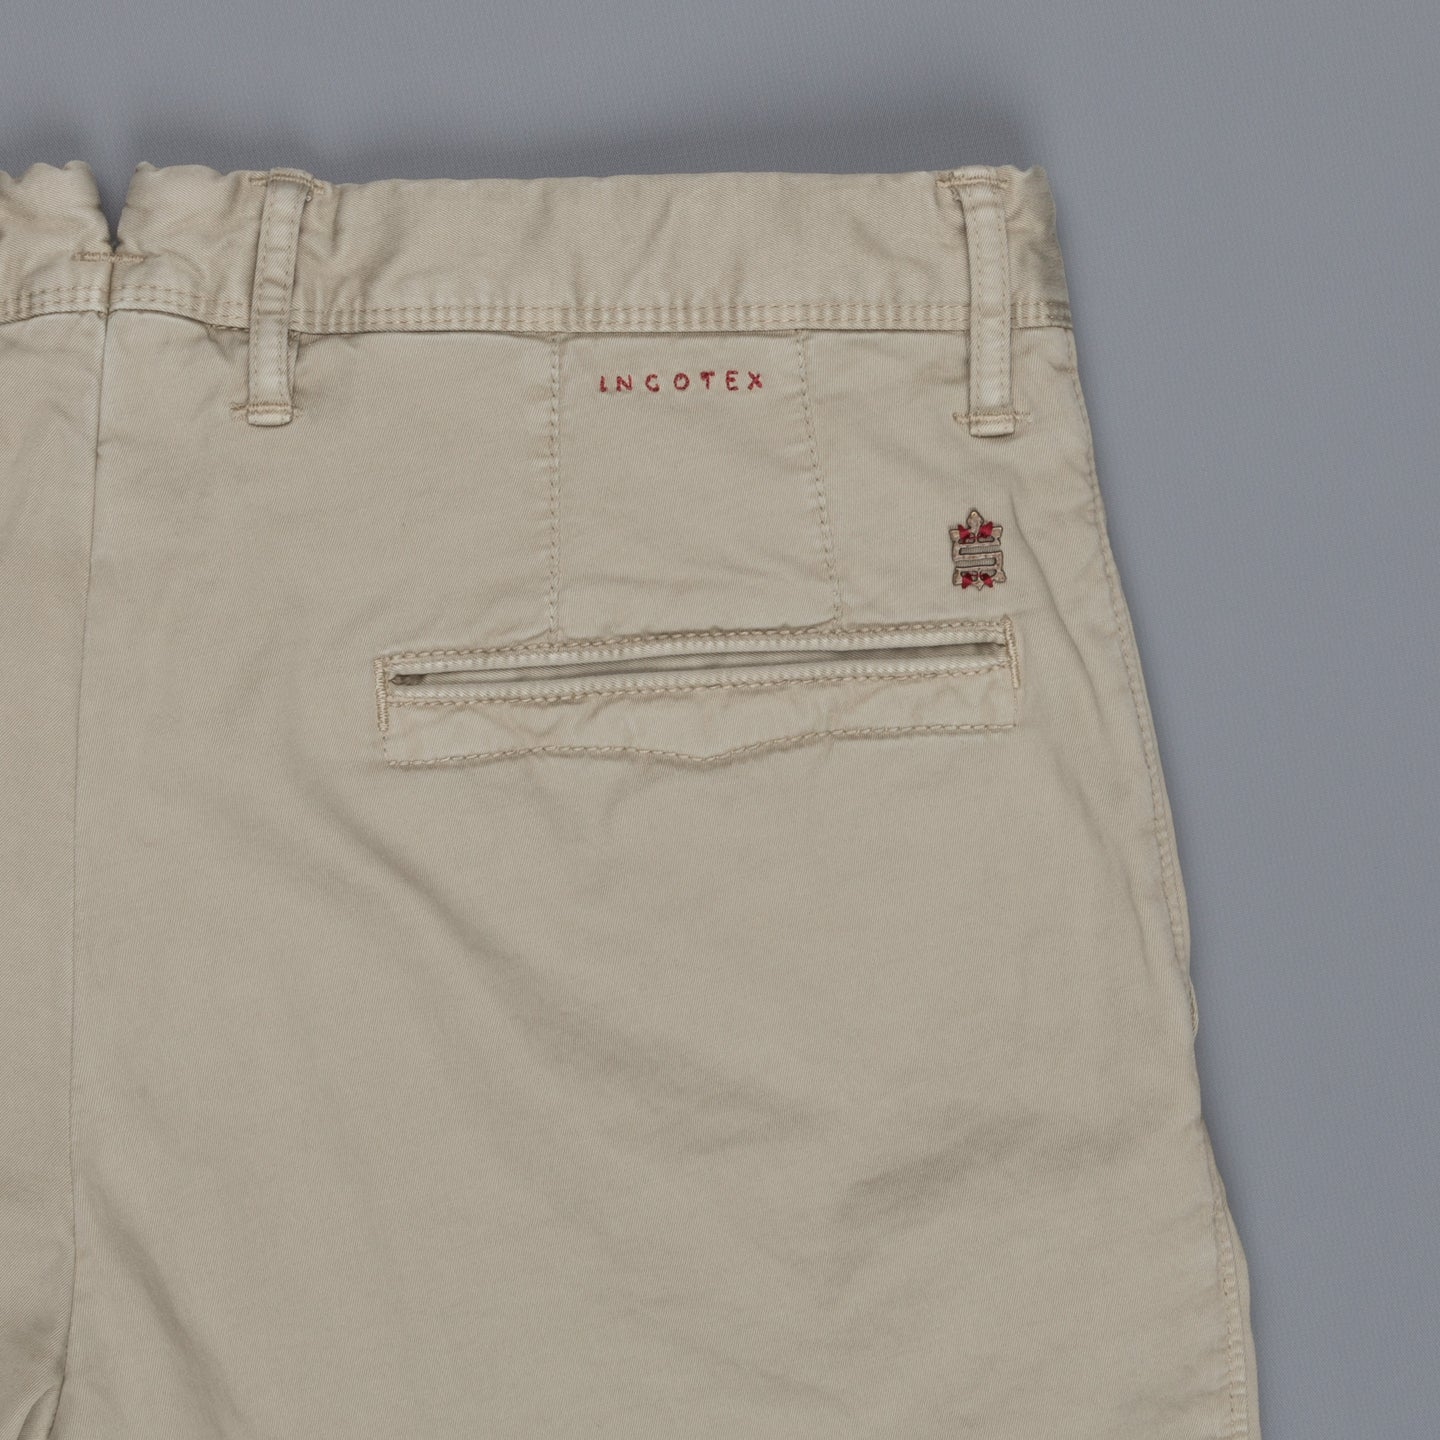 Incotex Slacks 1st603 Stretch Chino Verde Marcio Chiaro